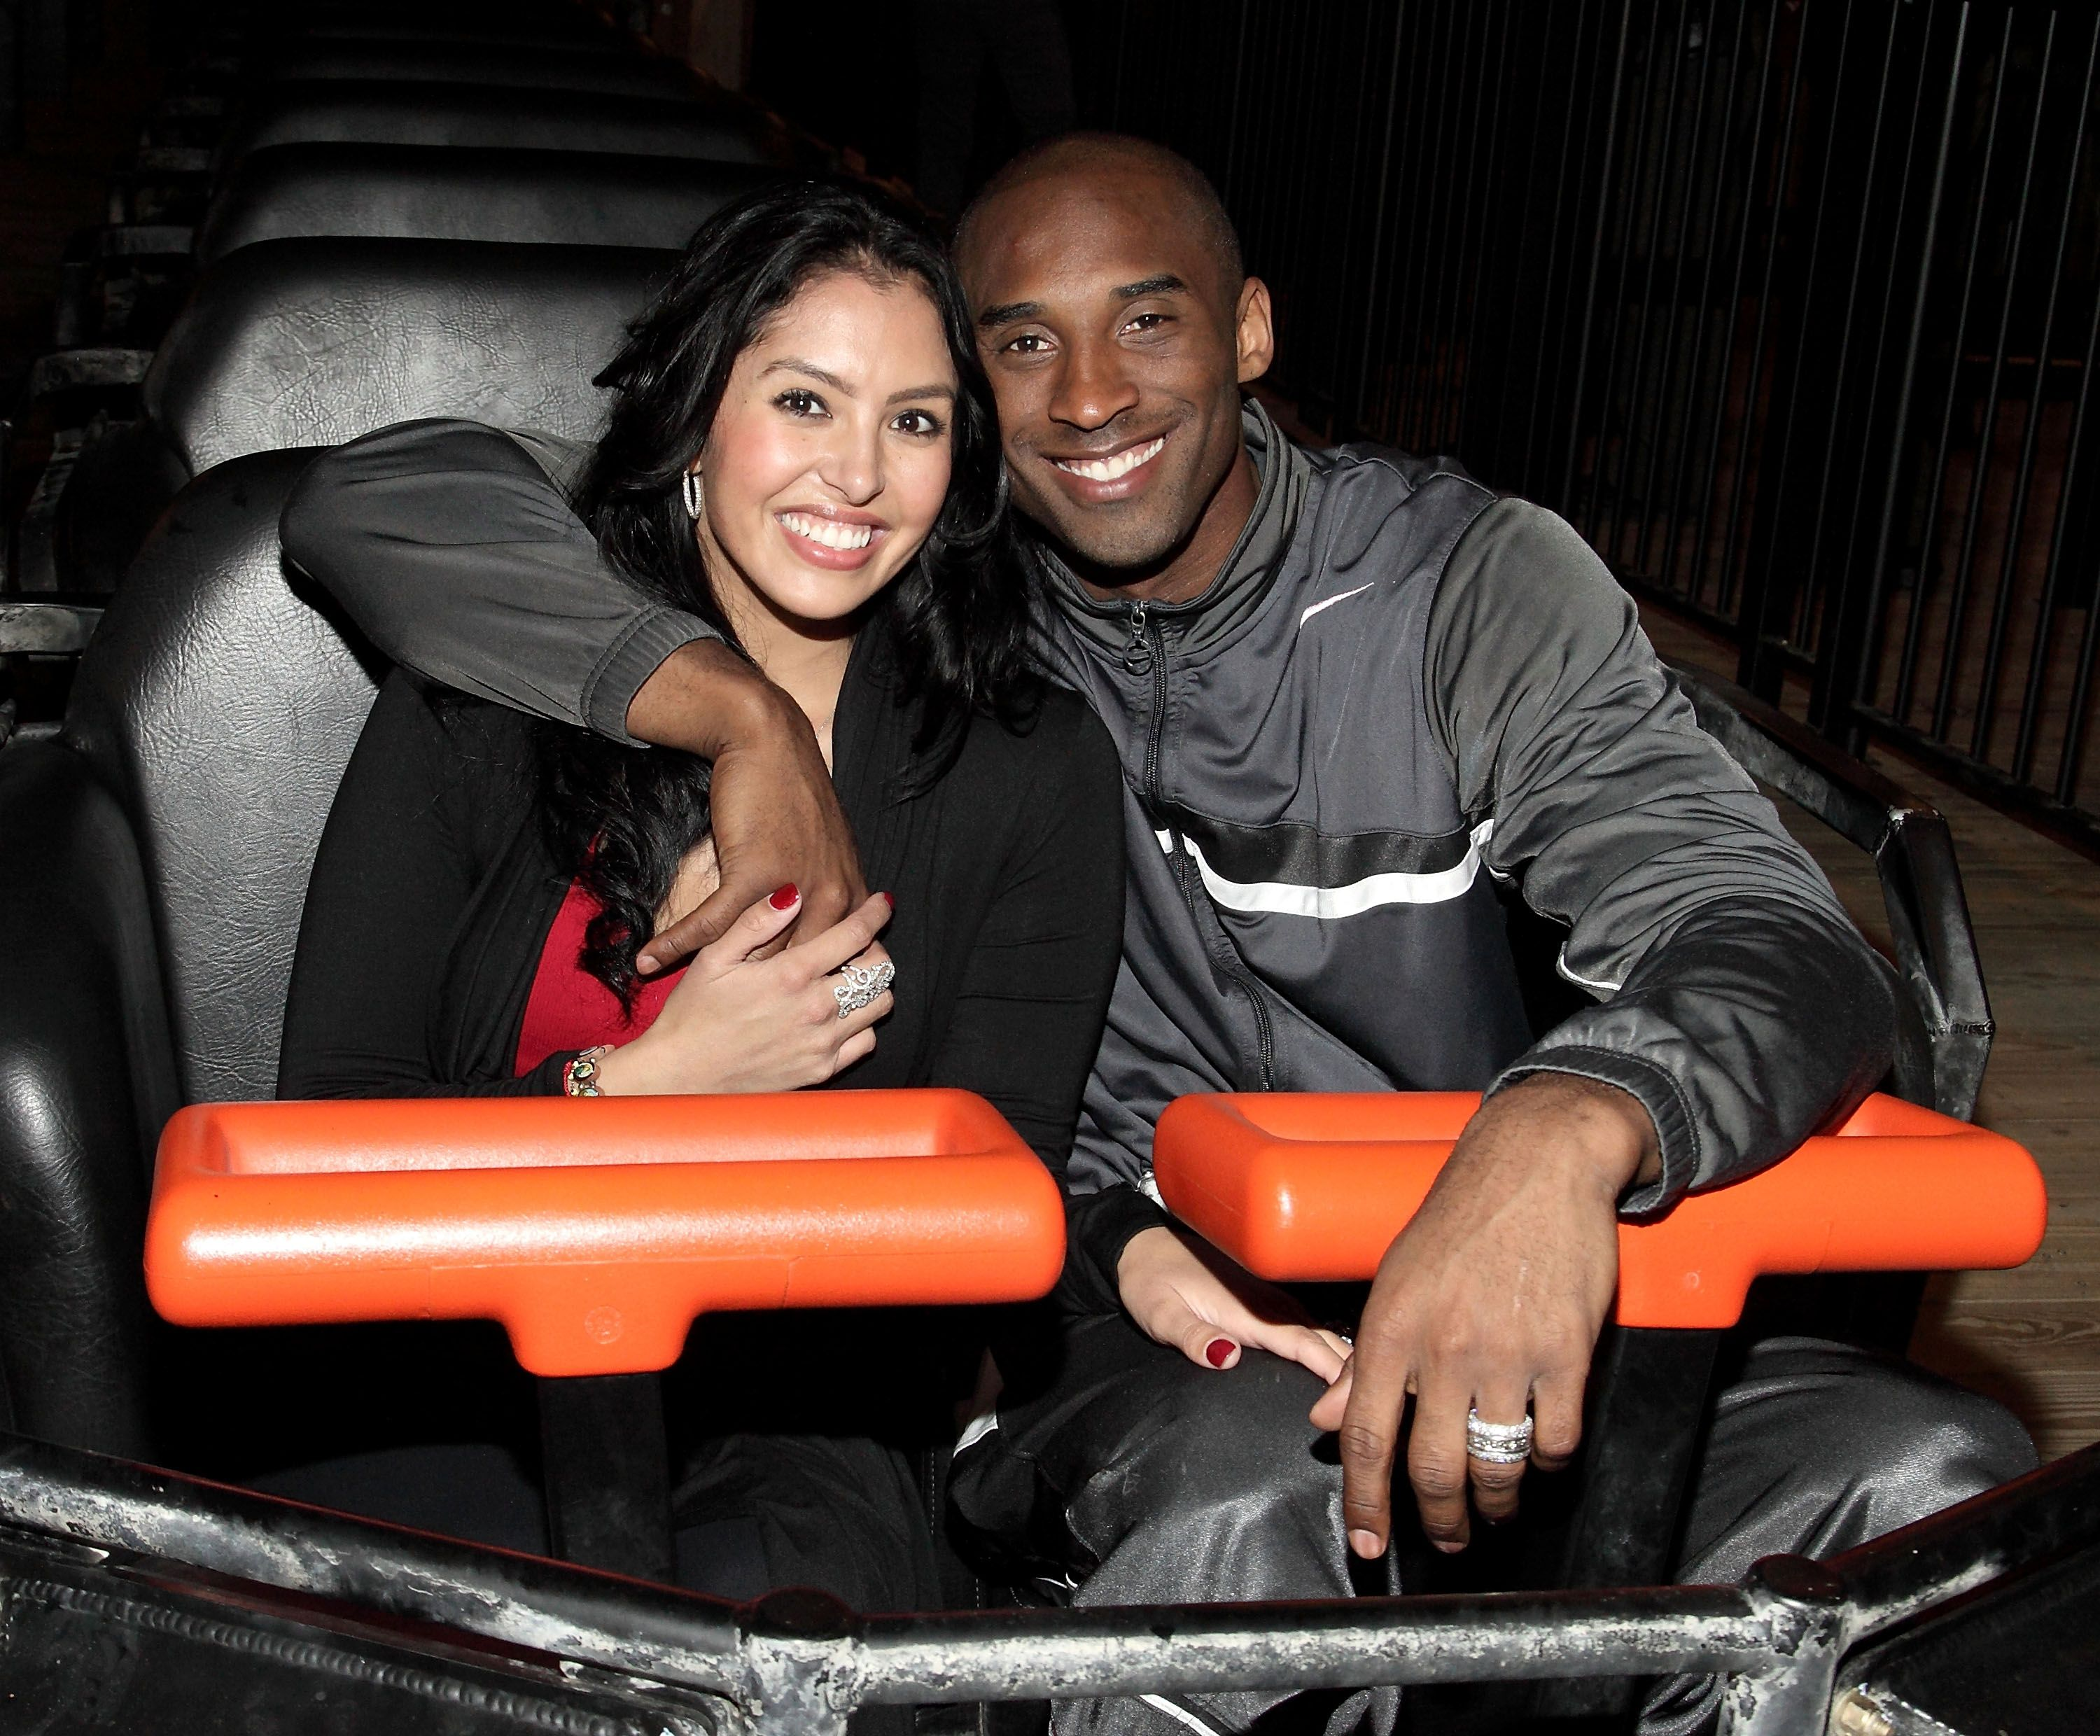 Kobe Bryant and Vanessa Bryant riding the Terminator Salvation - The Ride at Six Flags Magic Mountain on June 28, 2009 in Valencia, California. | Source: Getty Images